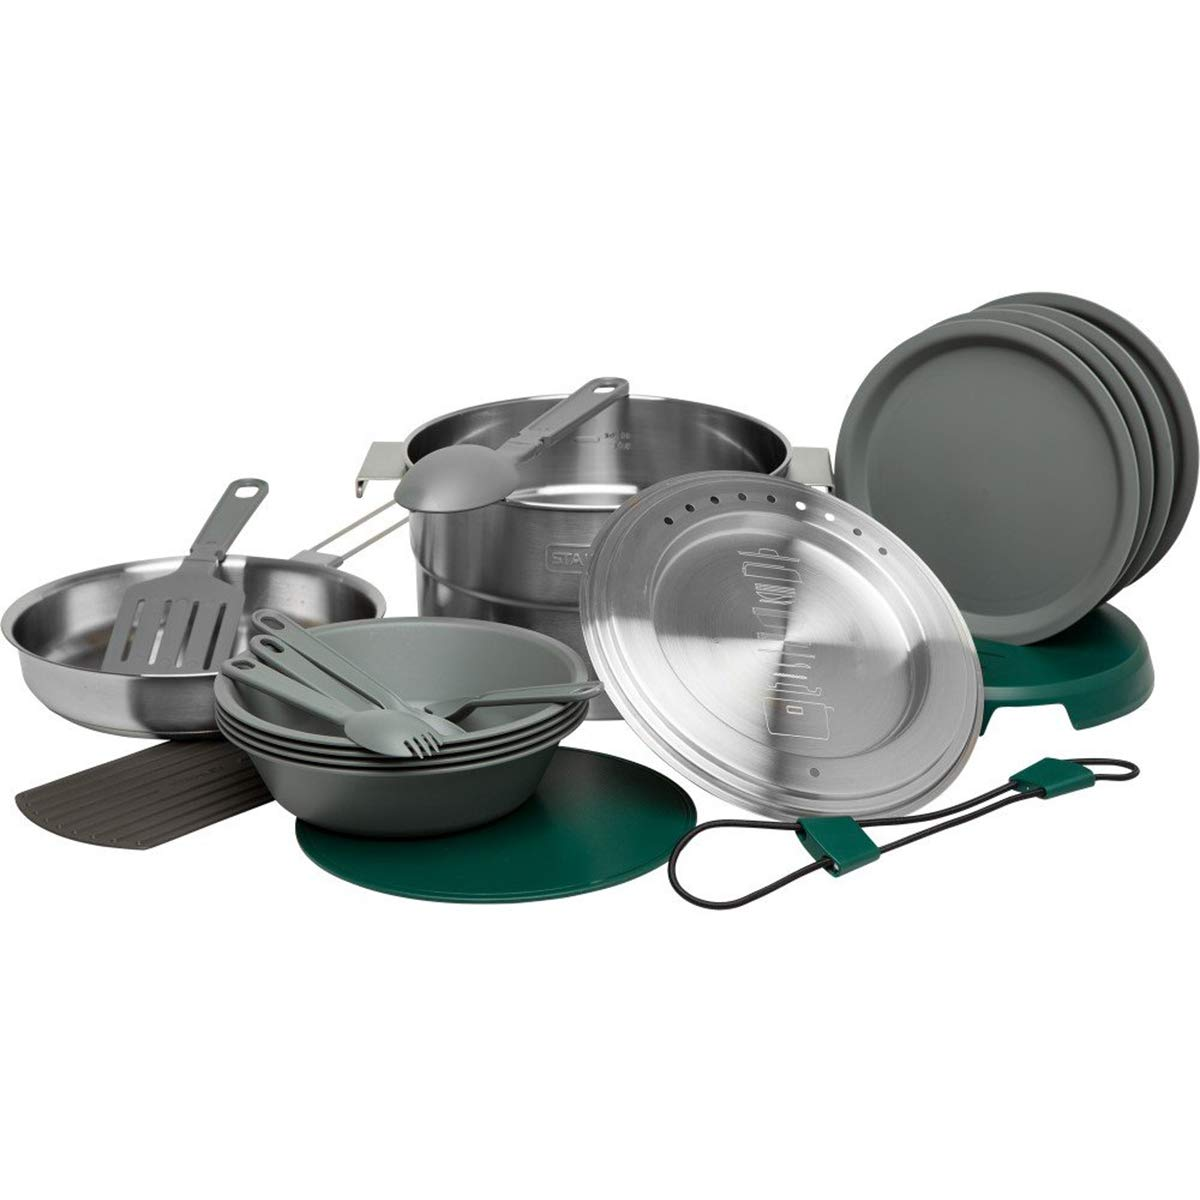 Stanley Base Camp Cook Set for Four - 21 Piece by Stanley